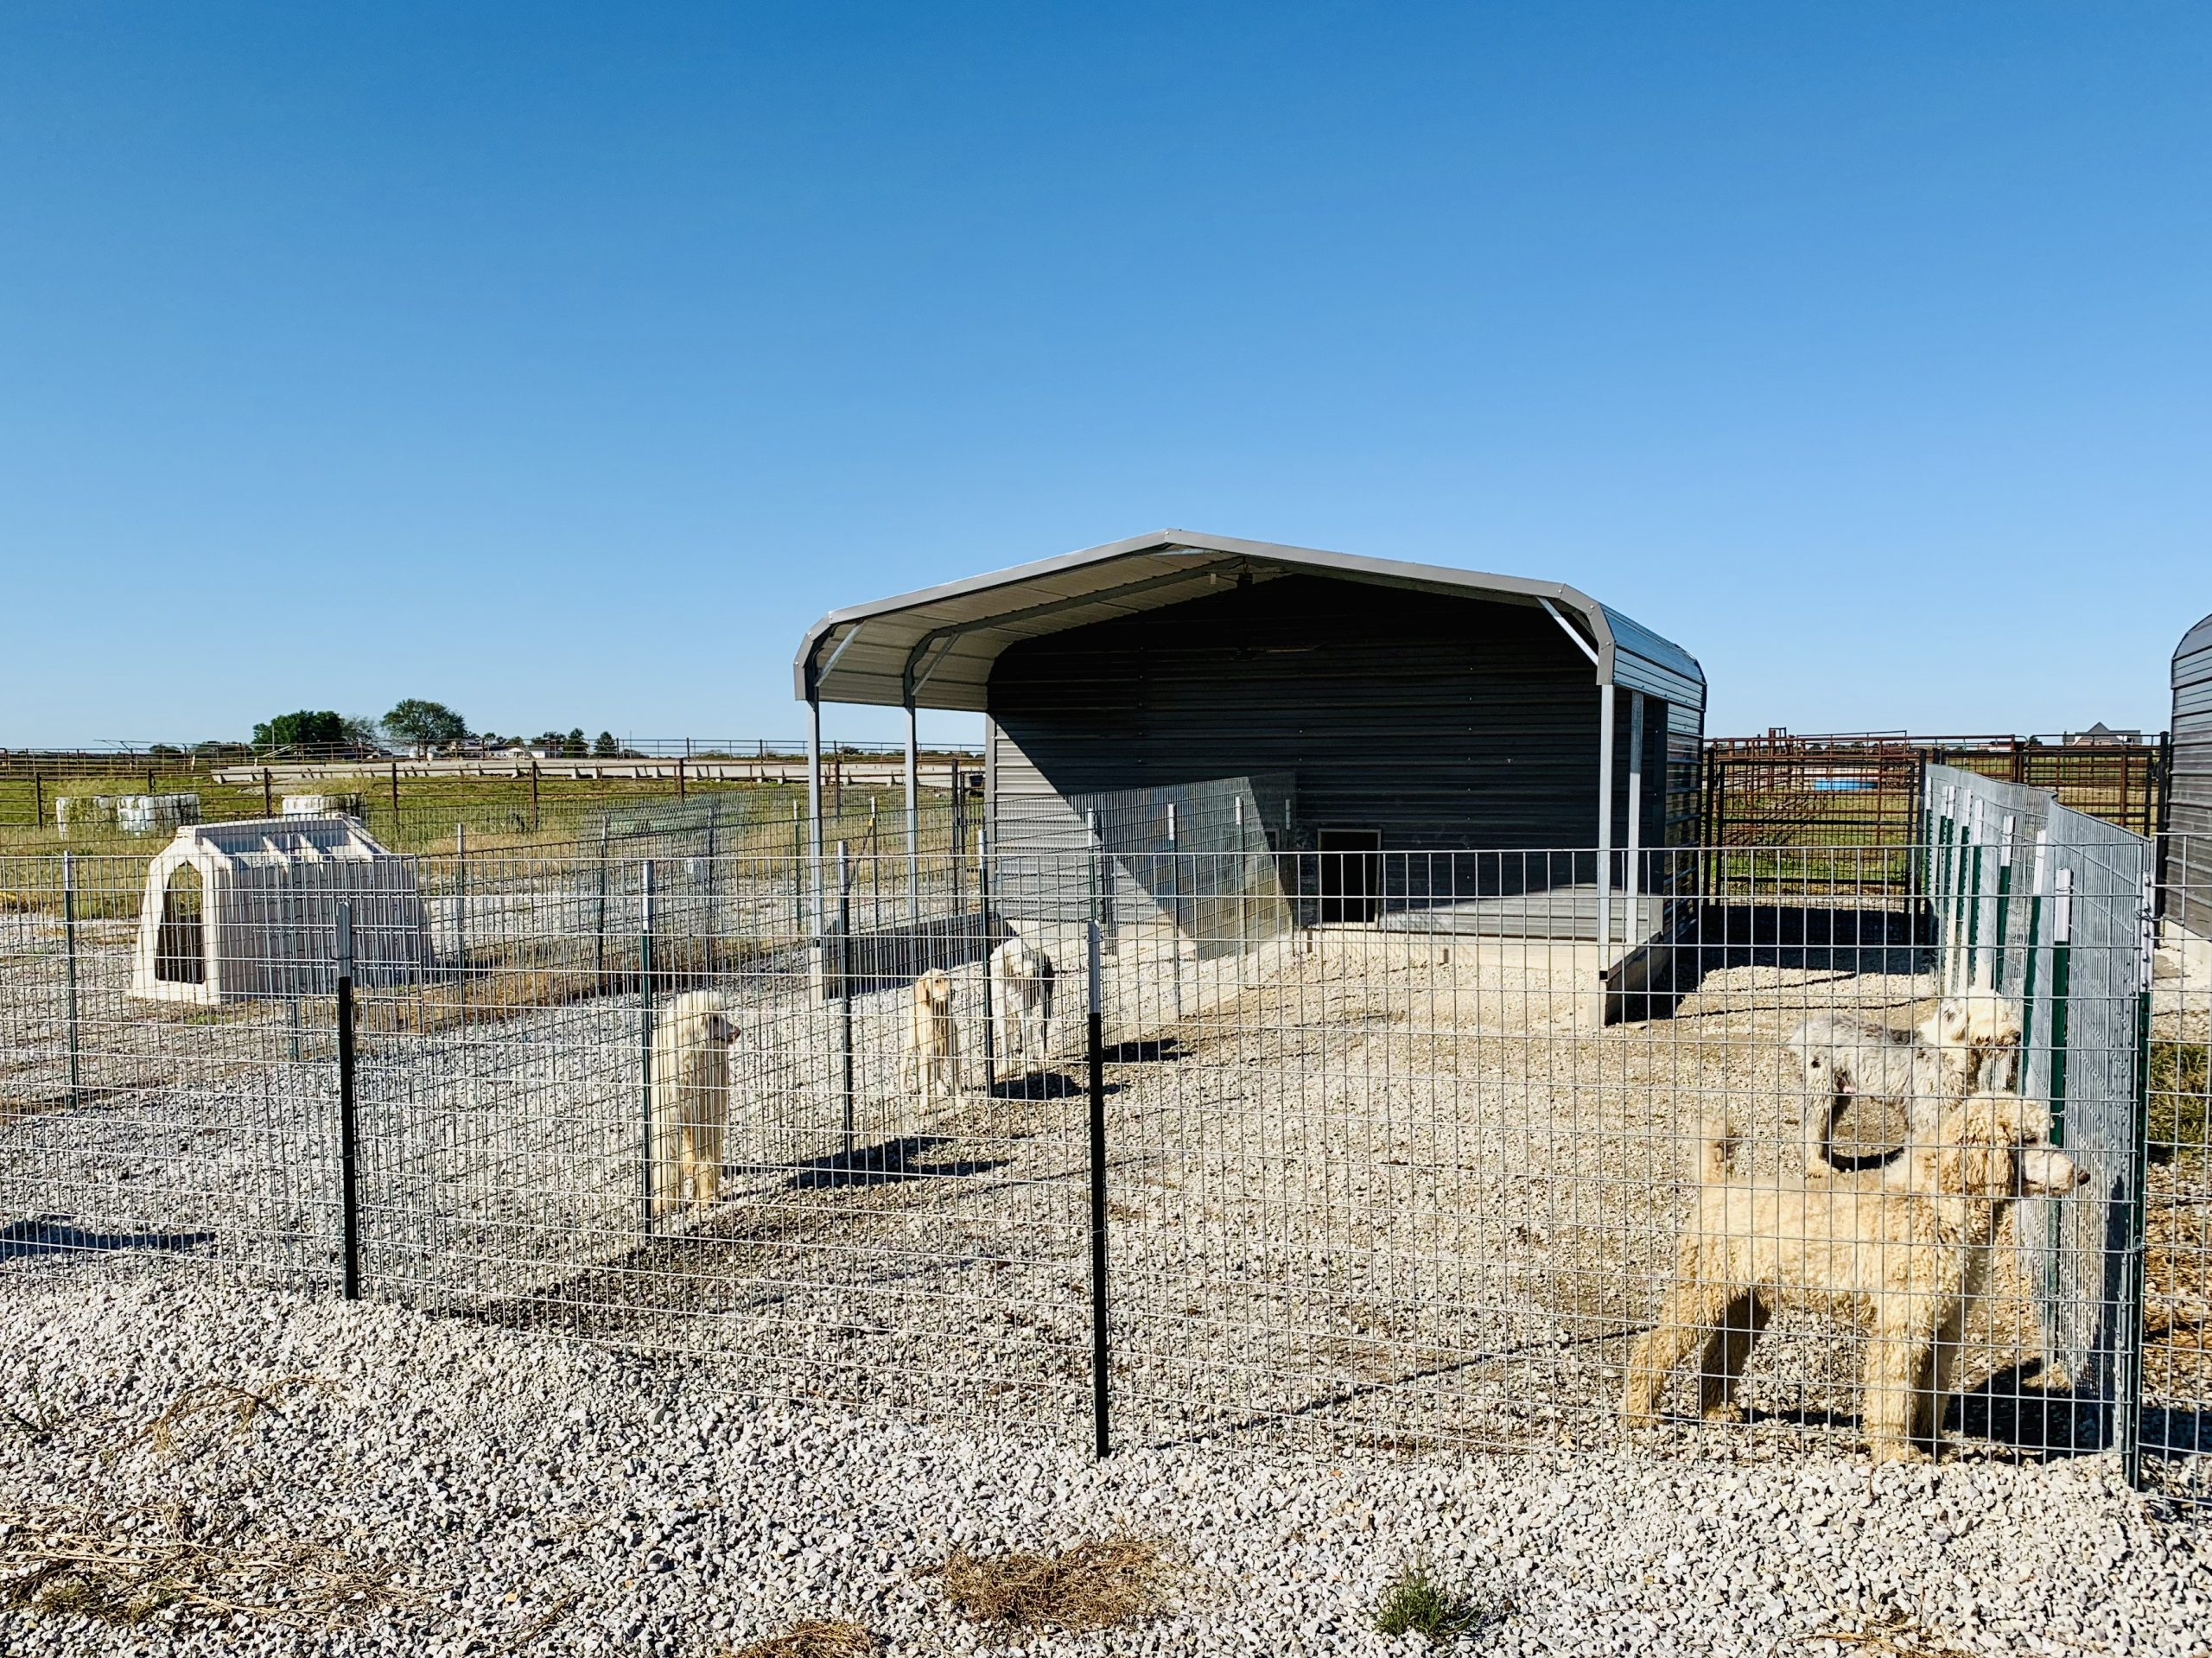 A view of Megan's kennel